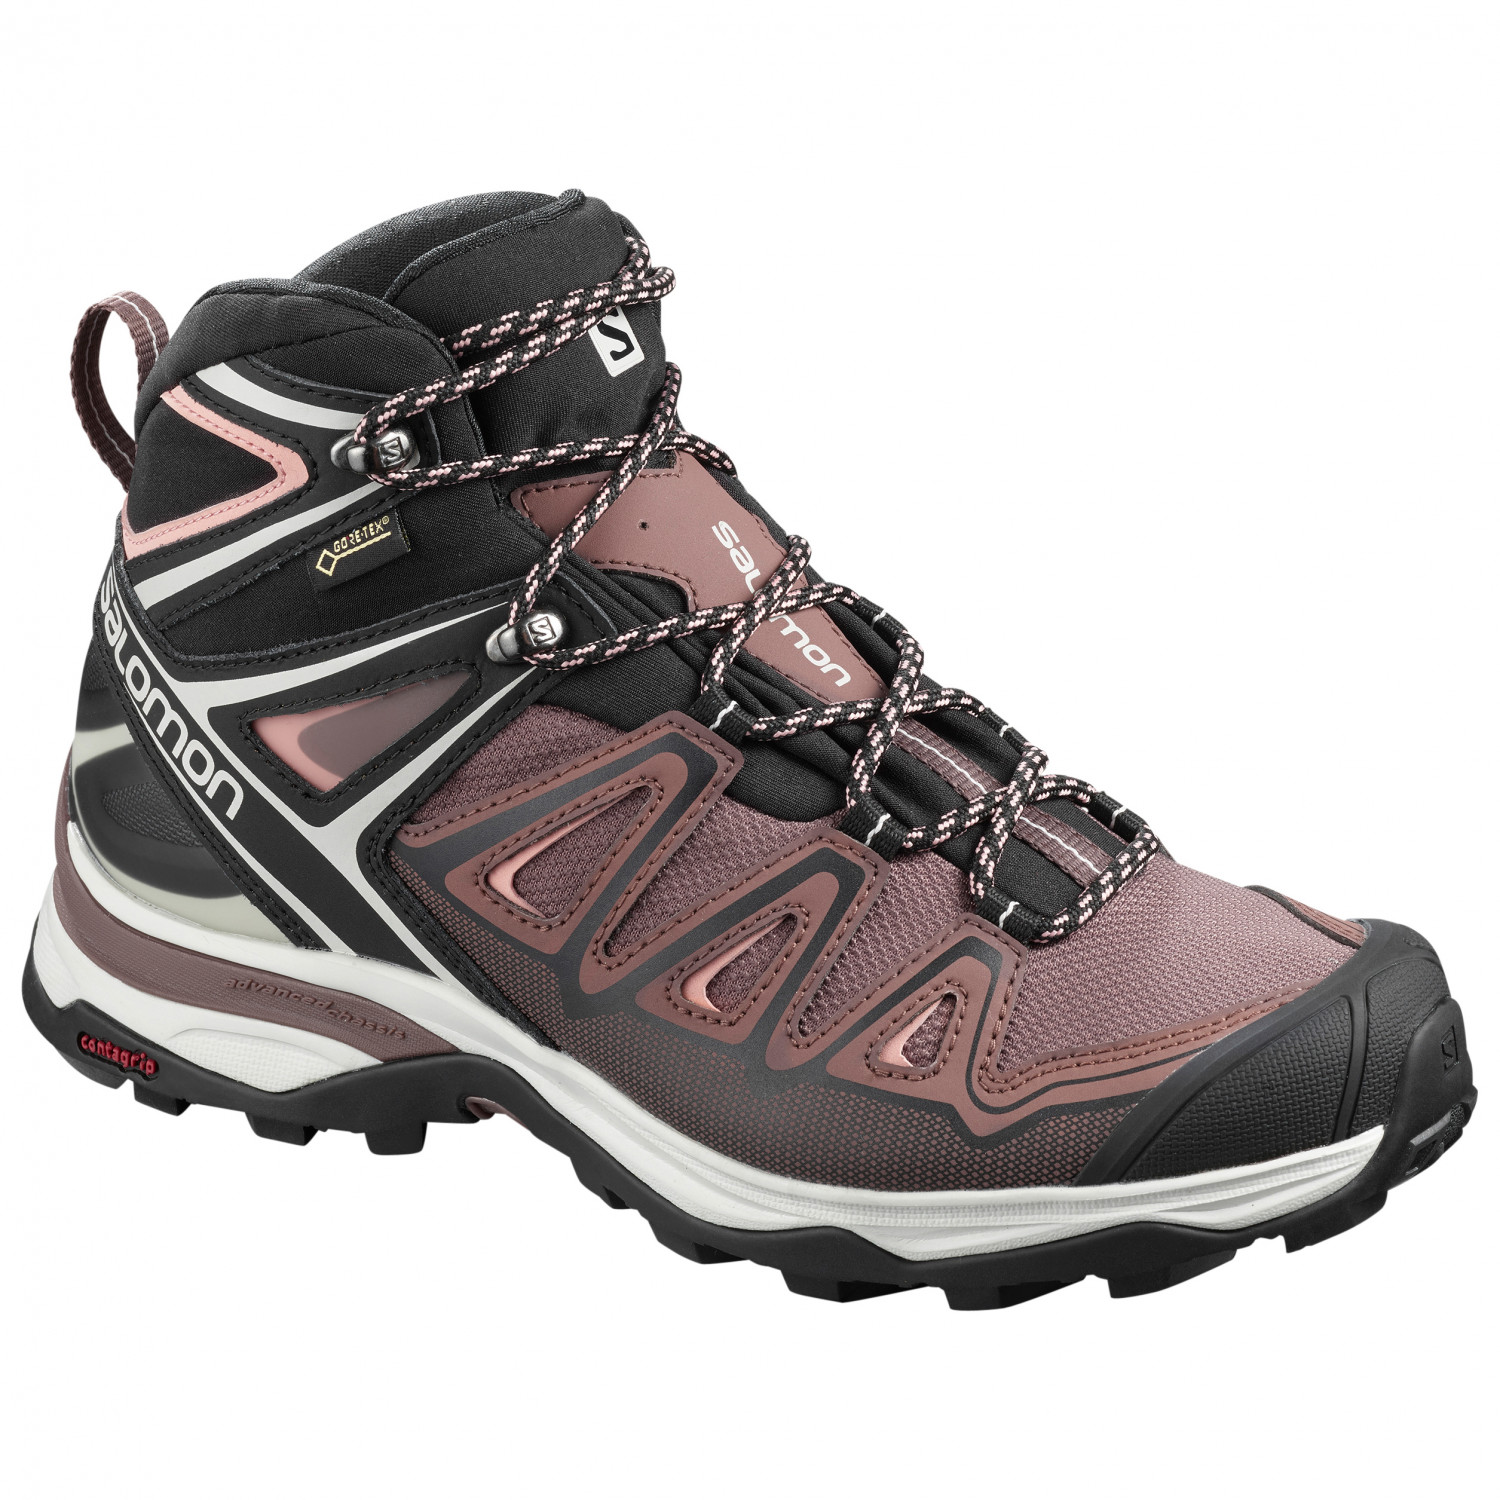 Salomon Women's X Ultra 3 Mid GTX Wandelschoenen Magnet Black Monument | 4 (UK)